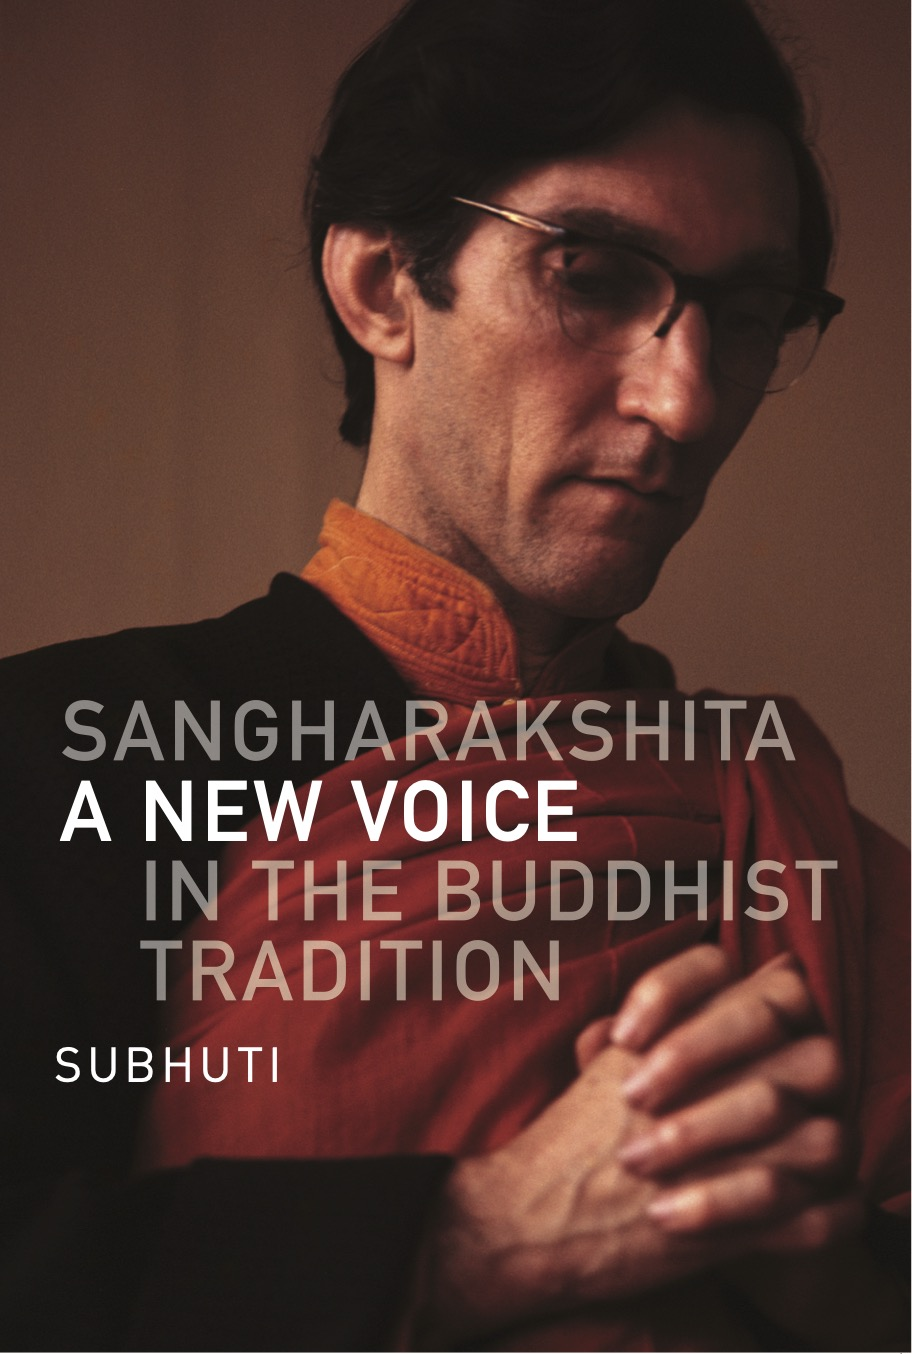 cover of book: Sangharakshita, A New Voice